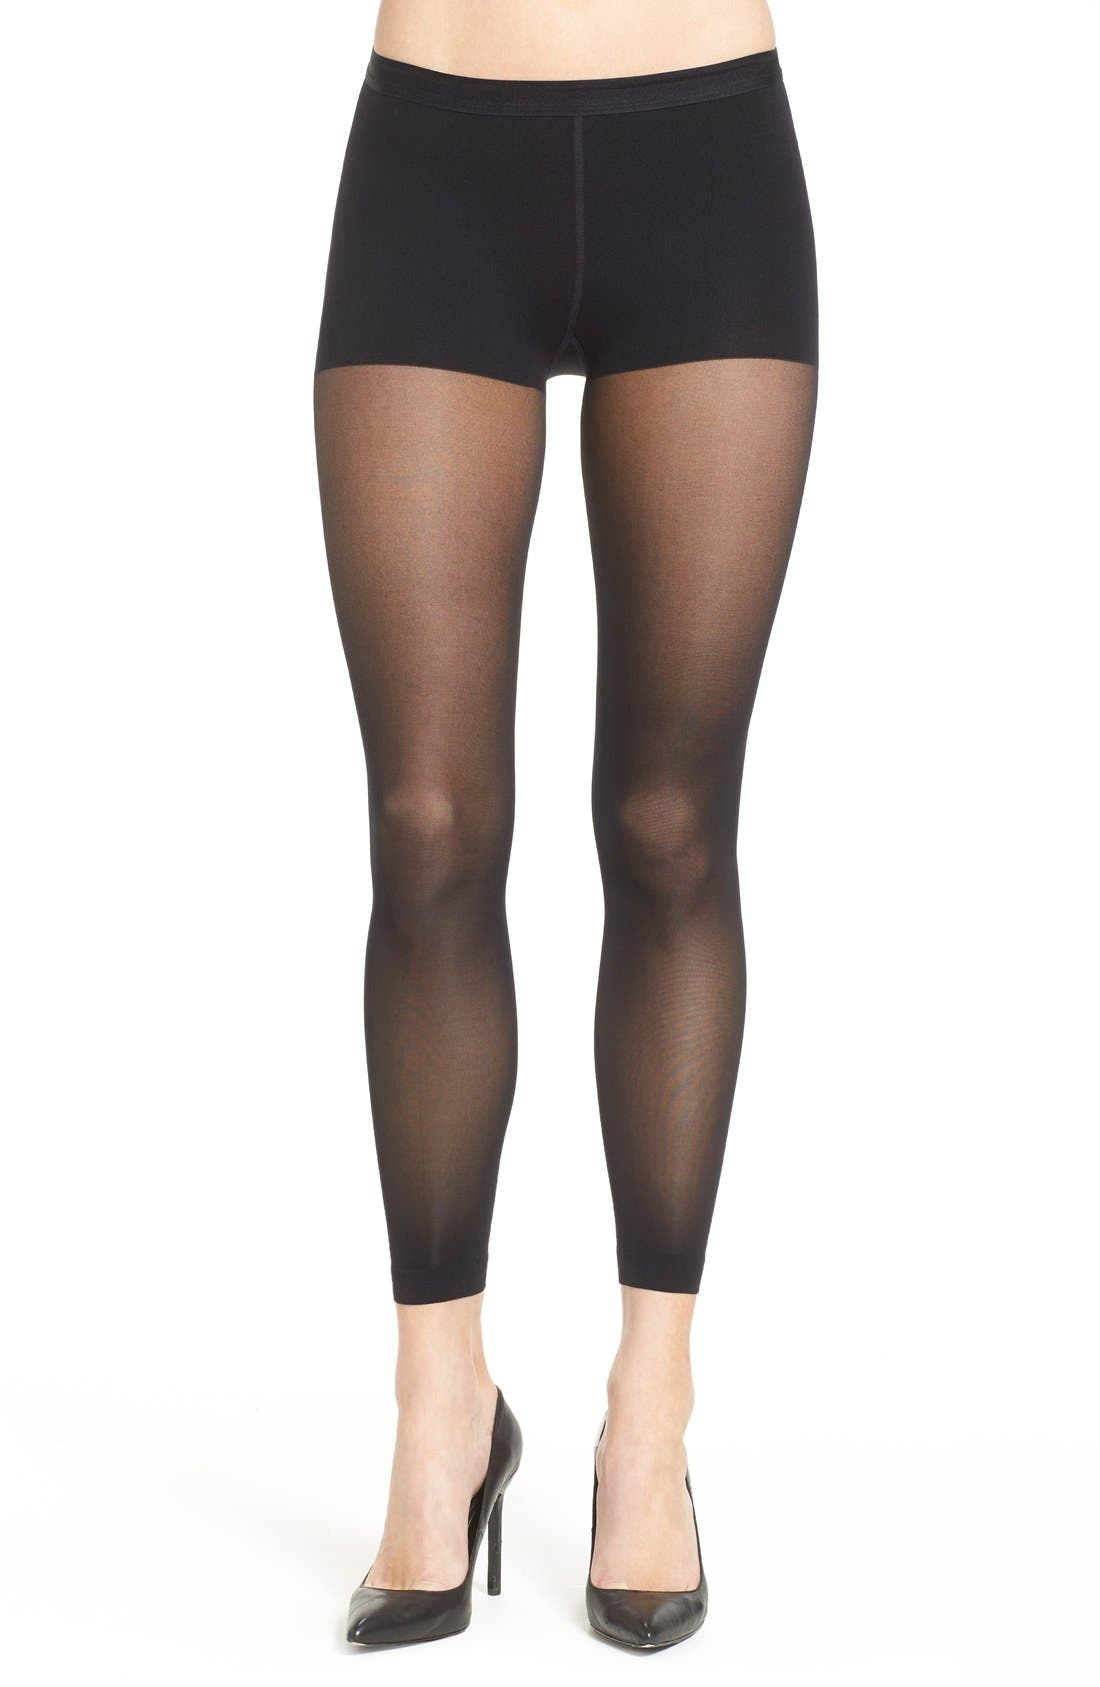 ITEM M6 Sheer Footless Tights in Black